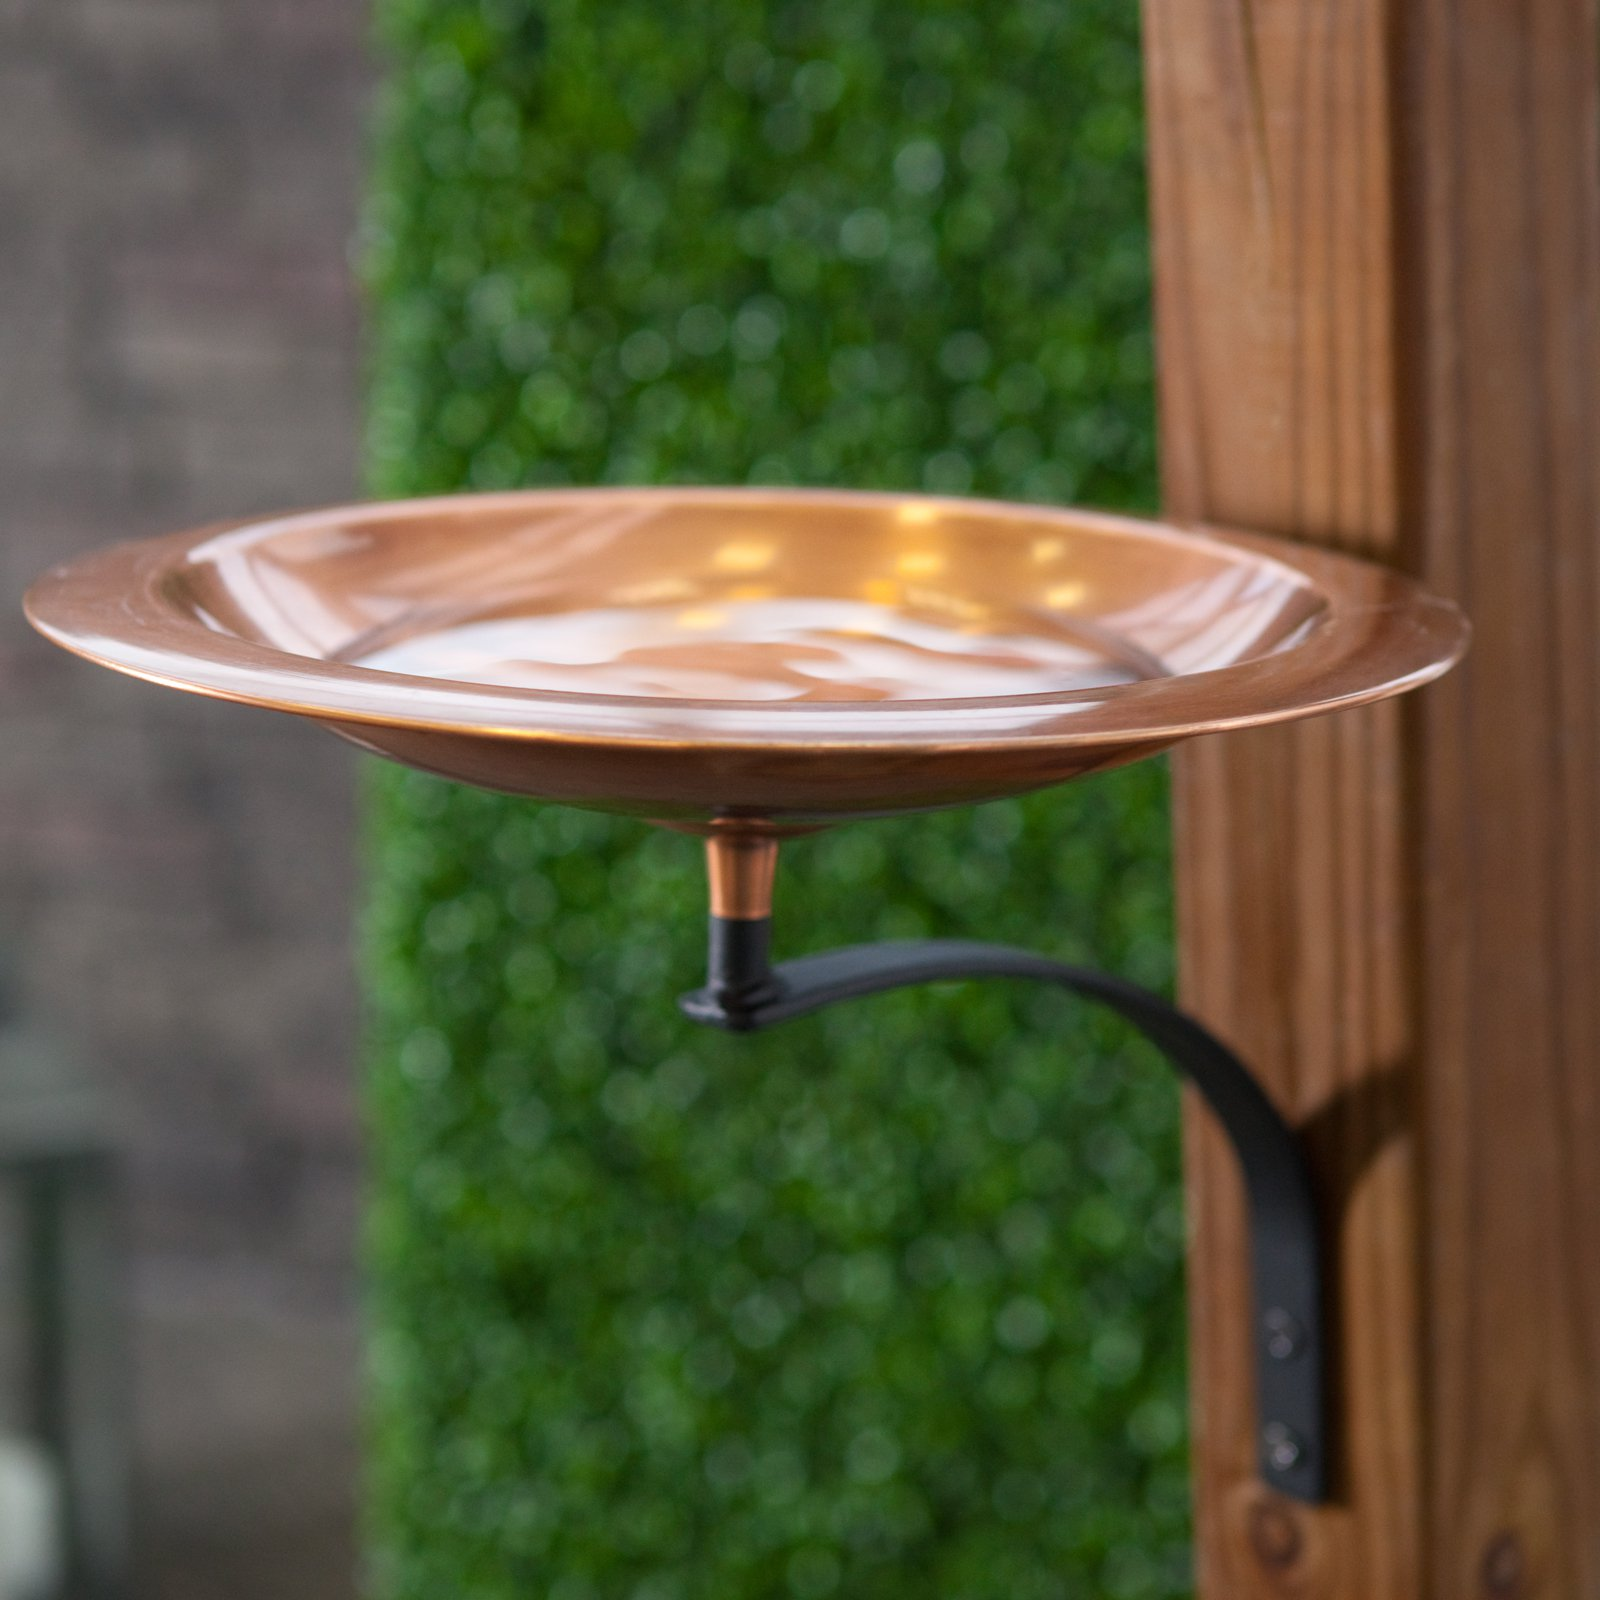 Classic Copper Birdbath Bowl with Wall Mount Bracket by Minuteman/Achla Designs